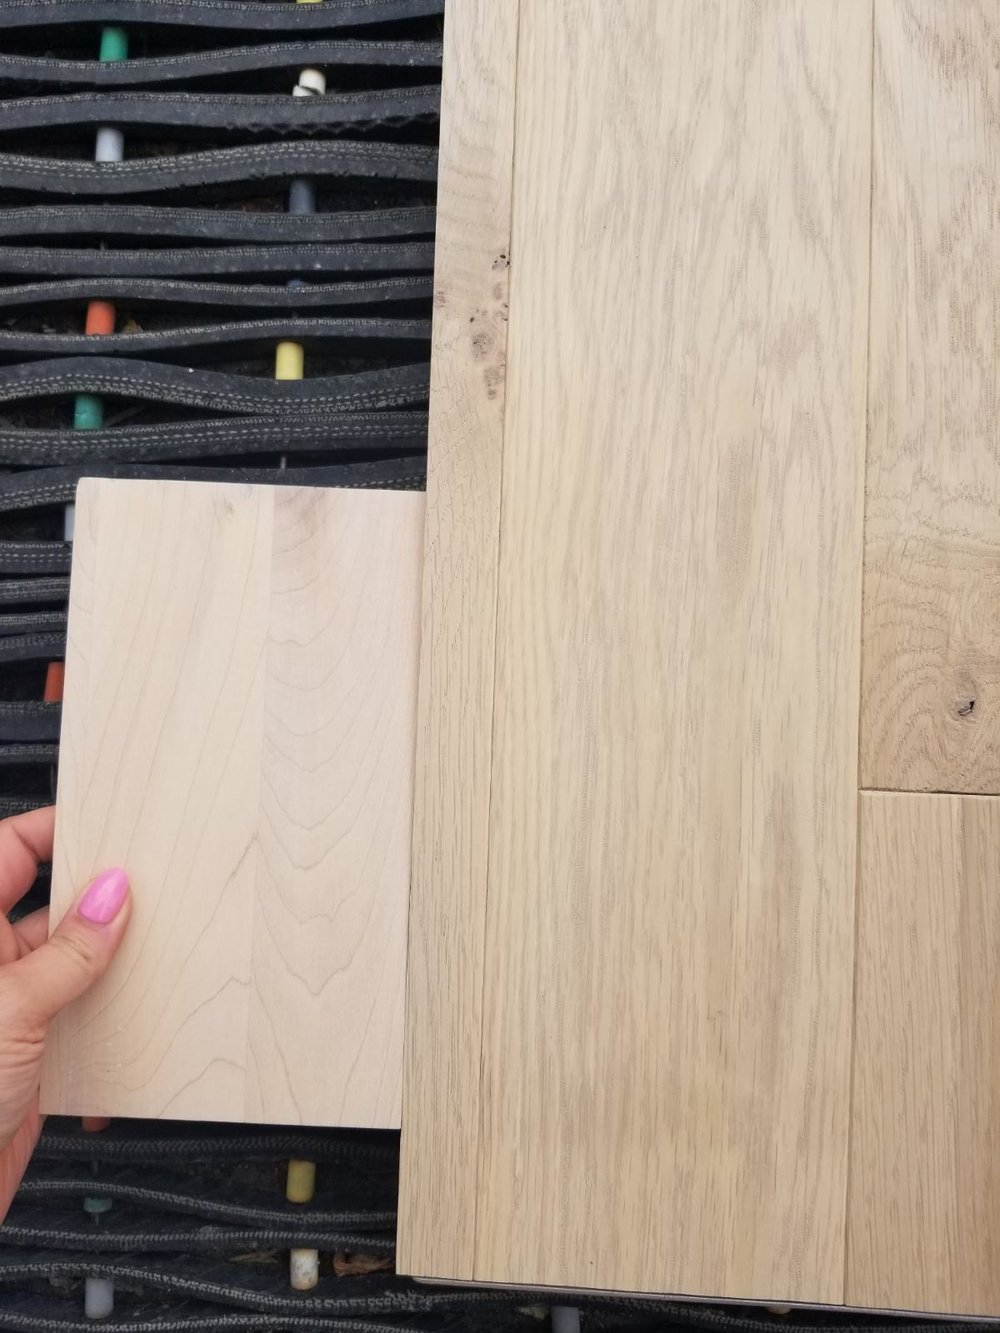 Our hardwood sample and stairs sample; it was the closest we could get